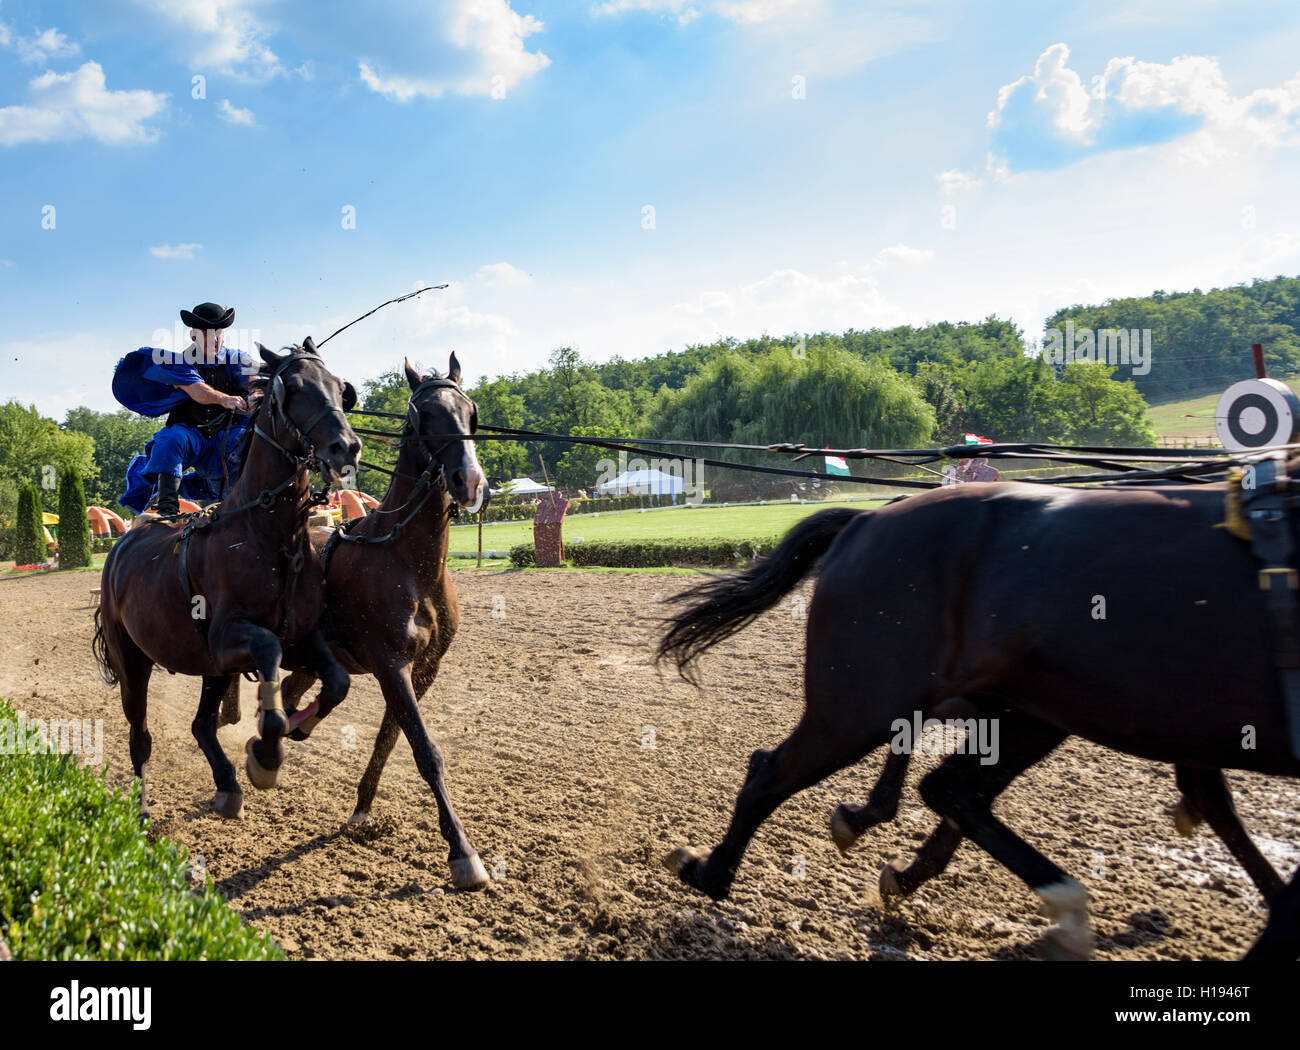 Hungarian Horsemen of the Puszta. Known as csikós or cowboys. - Stock Image